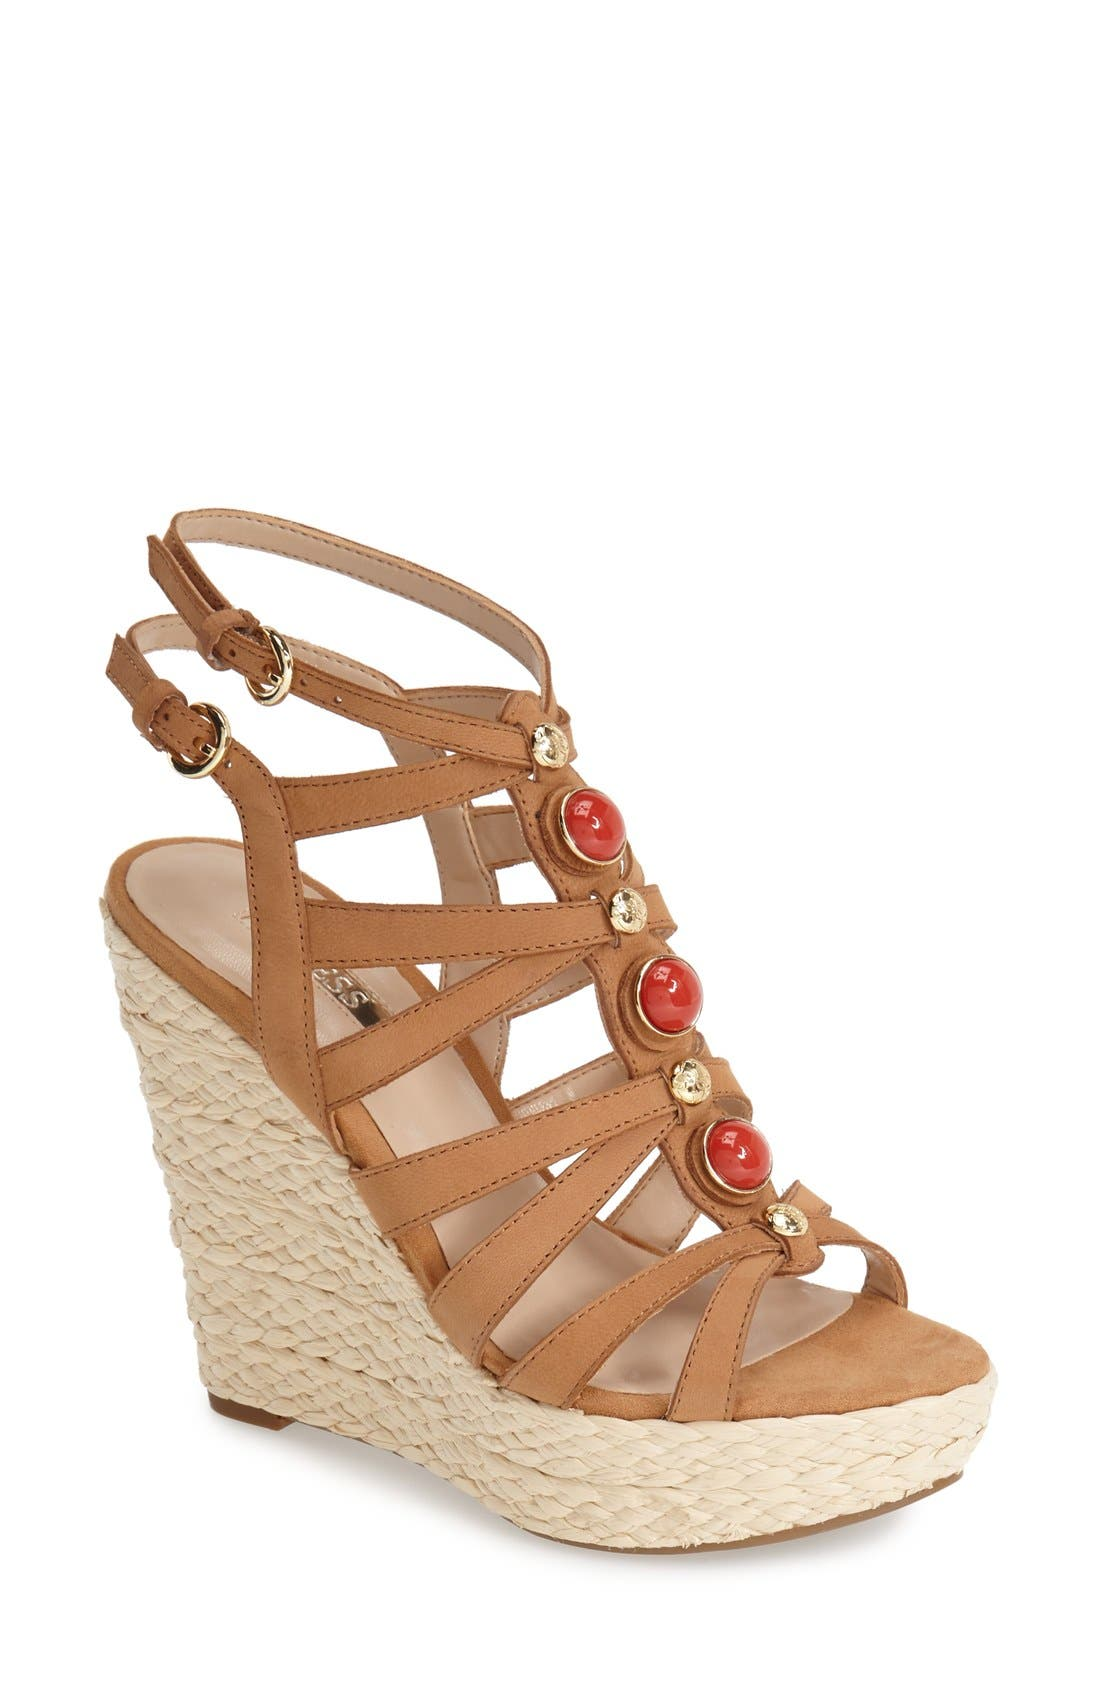 Main Image - GUESS 'Onixx' Snake Embossed Leather Wedge Sandal (Women)